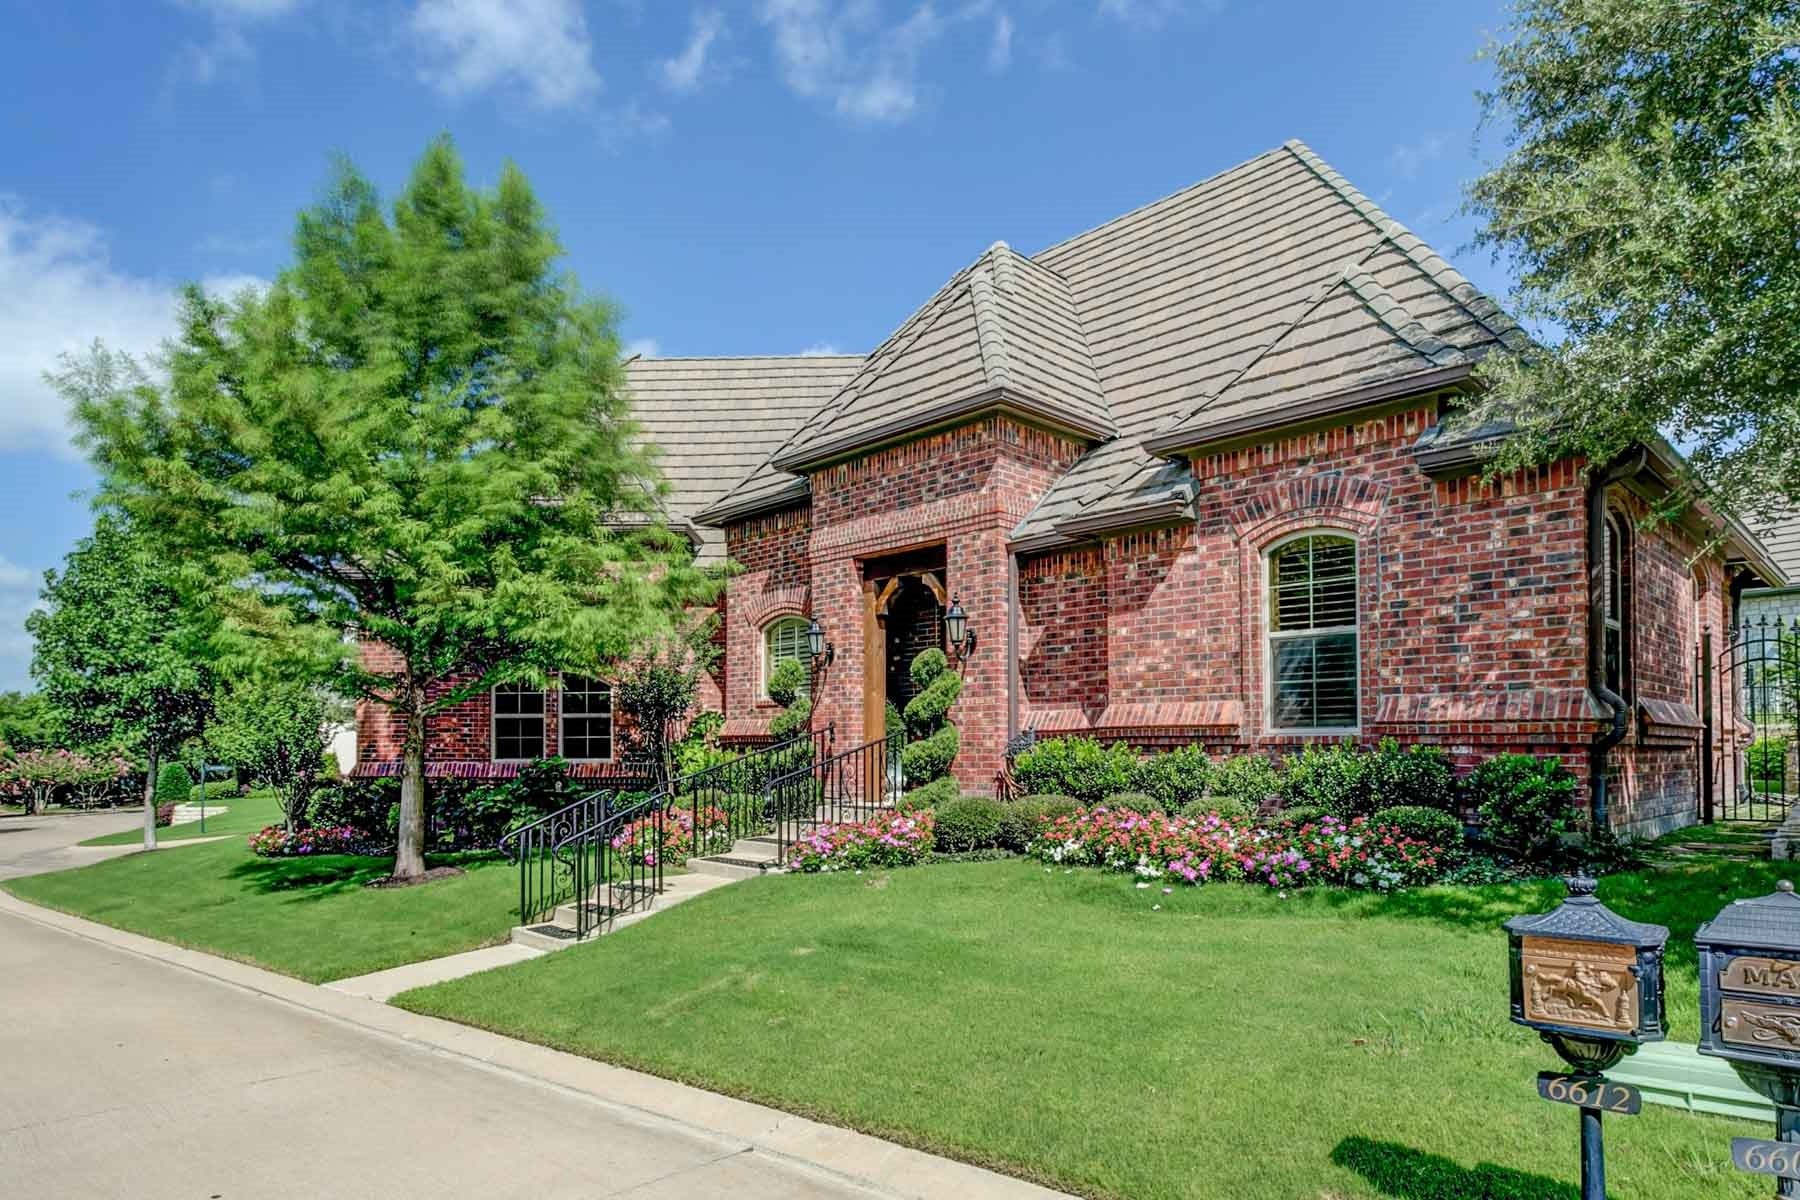 Casa Unifamiliar por un Venta en Beautiful Mira Vista Garden Home 6612 Augusta Rd Fort Worth, Texas, 76132 Estados Unidos